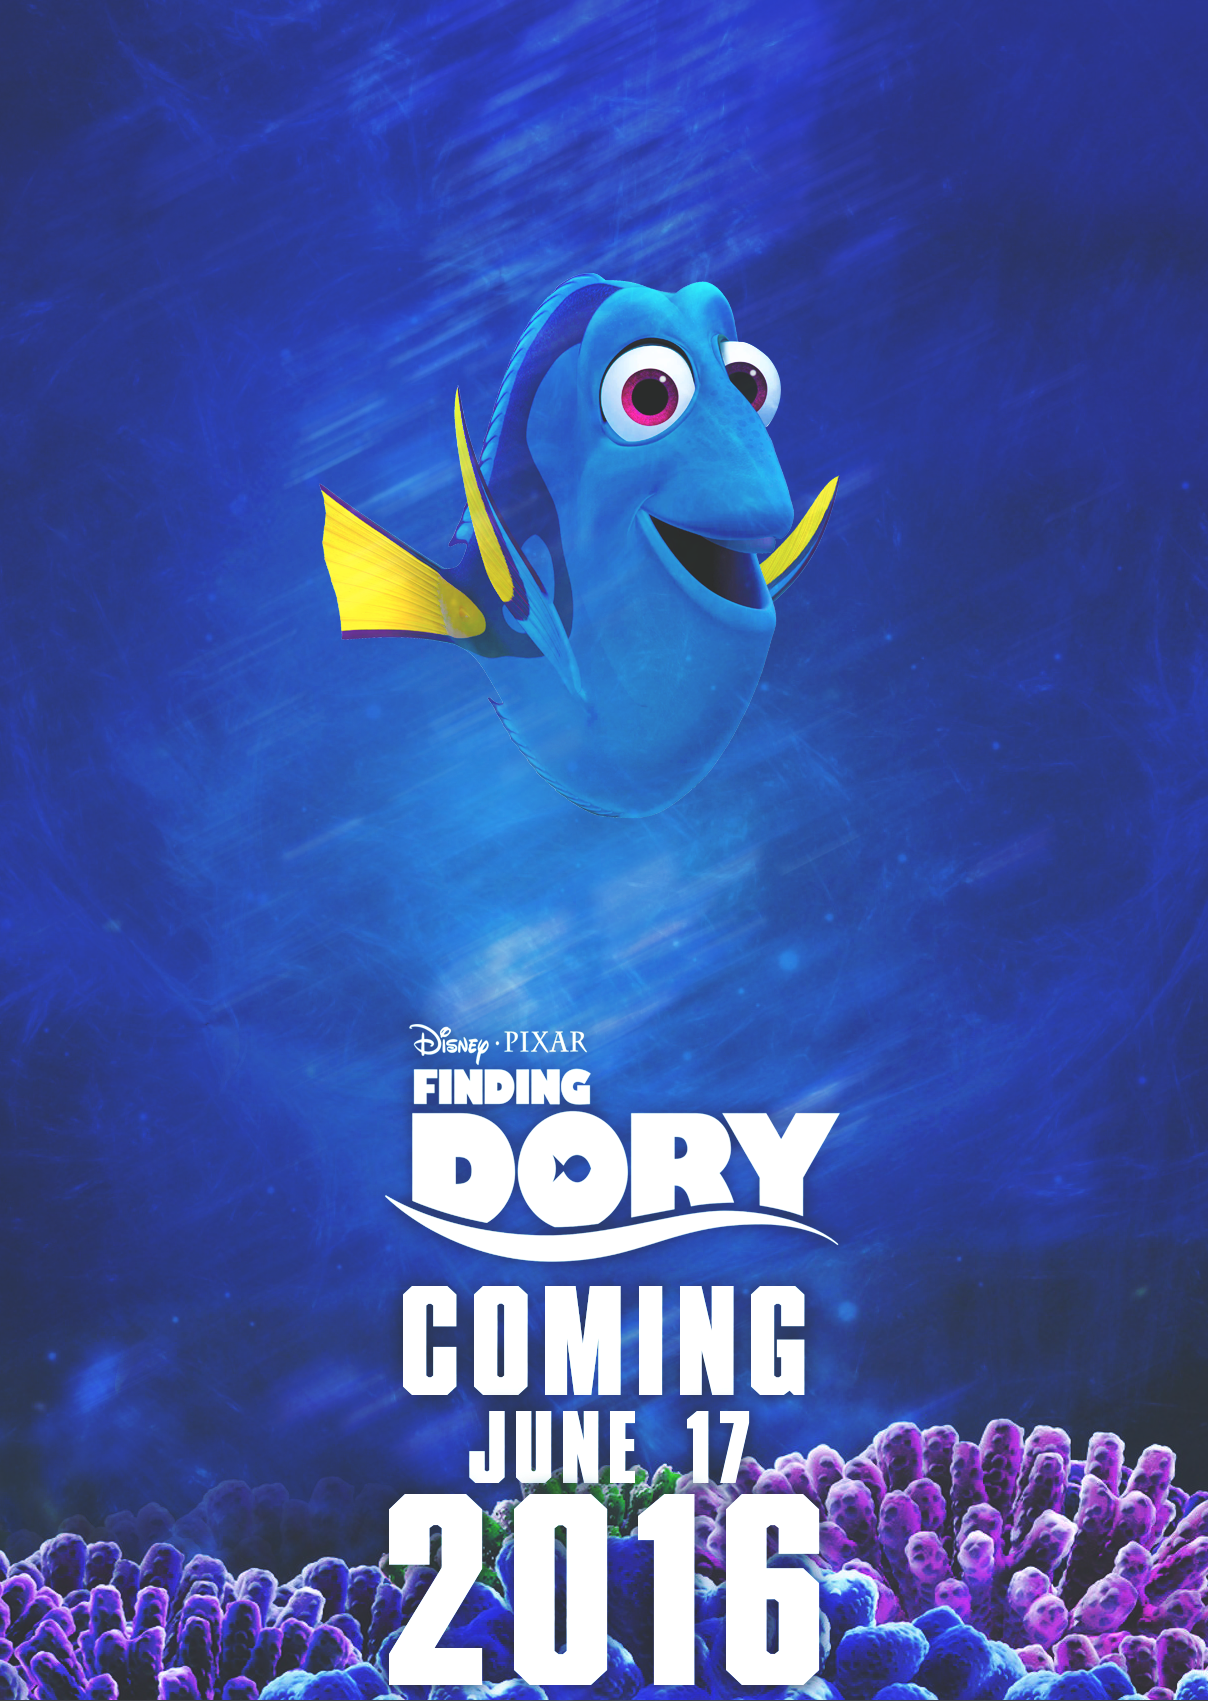 http://orig05.deviantart.net/5bc2/f/2015/315/d/7/finding_dory_2016_by_deztrips-d9gb5br.png